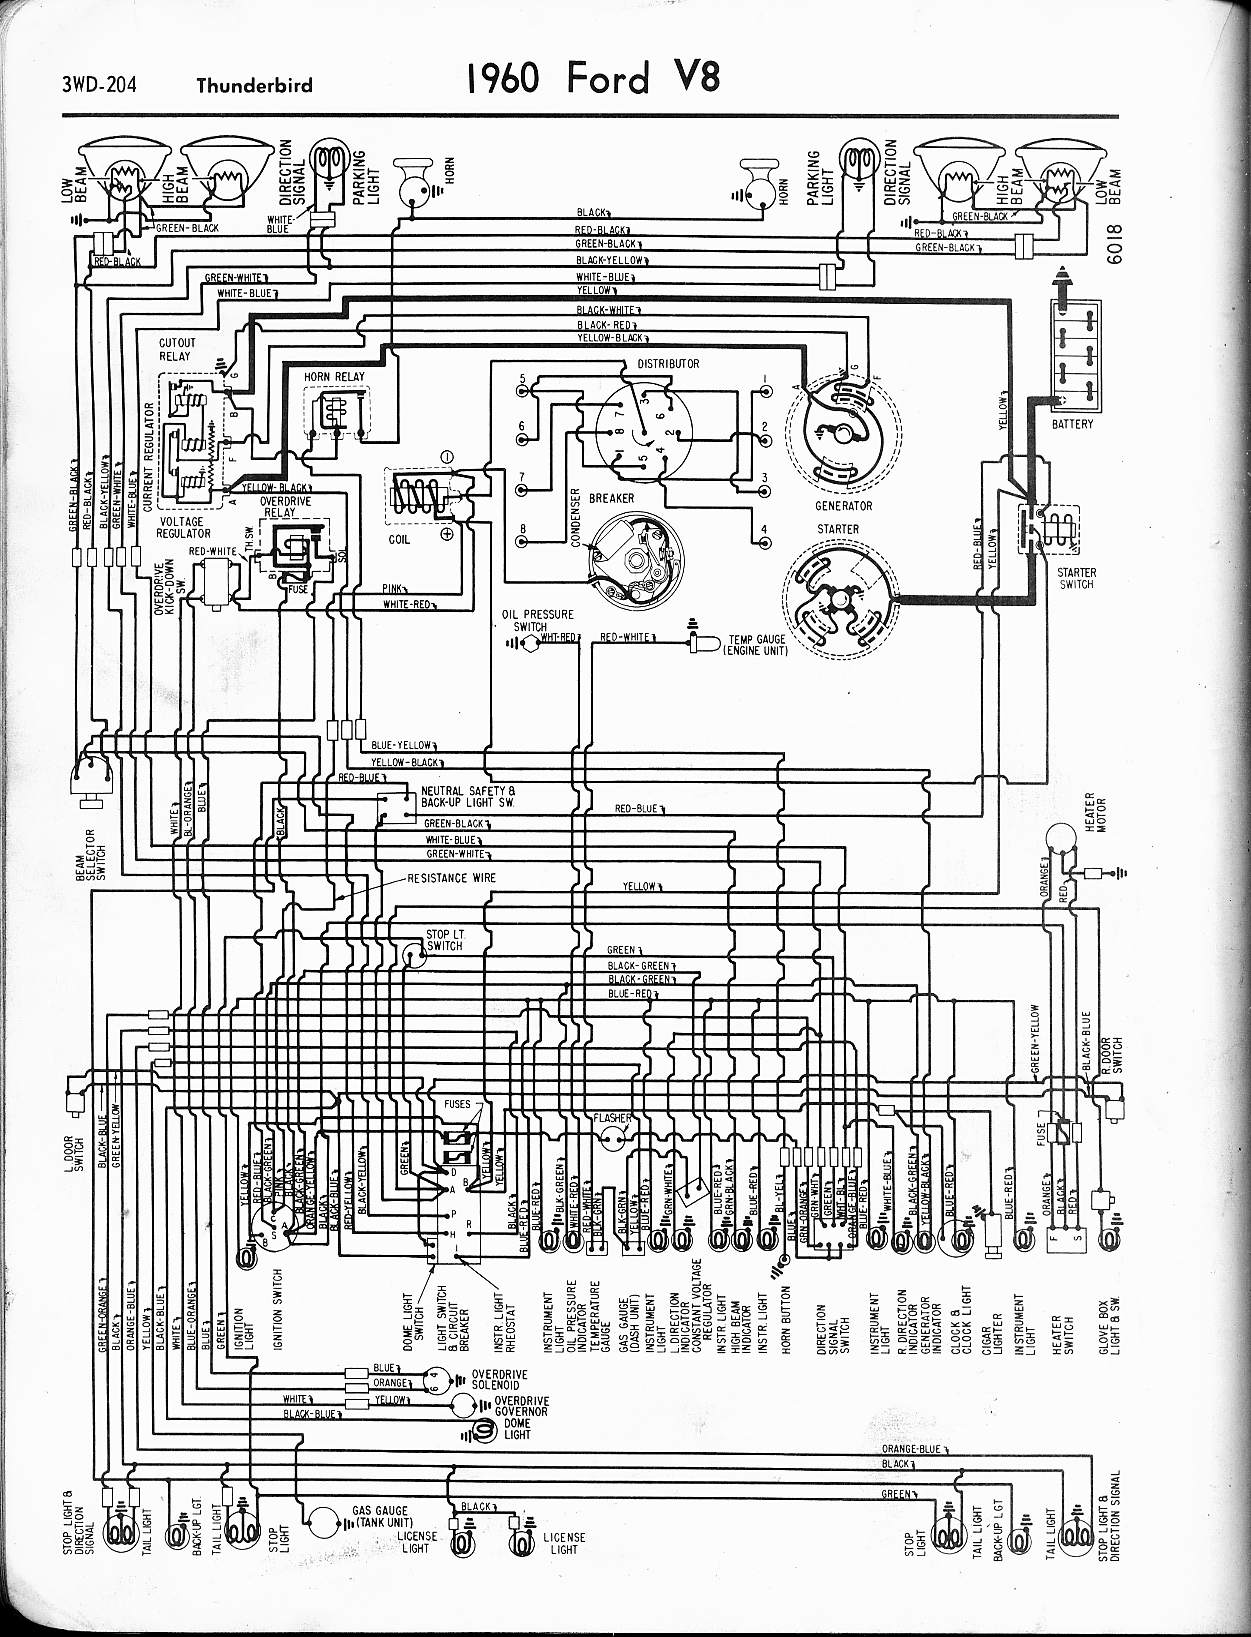 MWire5765 204 57 65 ford wiring diagrams 2002 F250 Wiring Diagram at gsmx.co